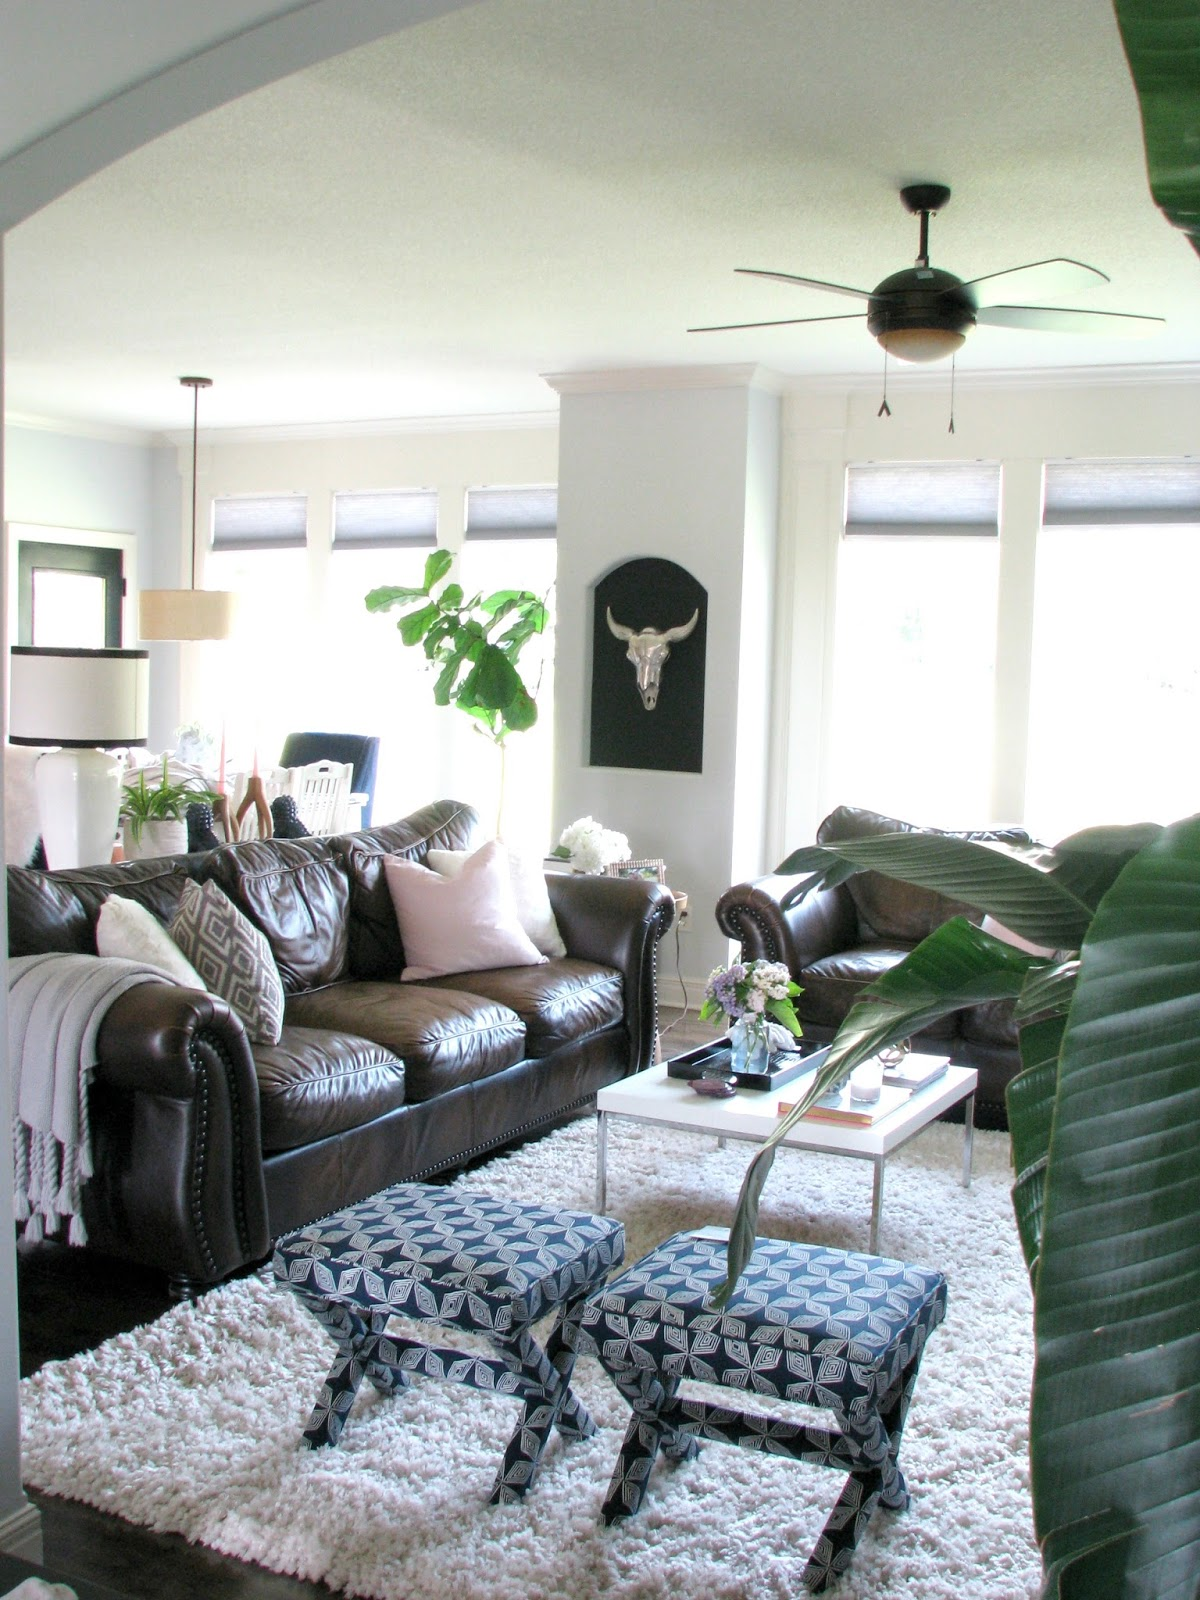 Decorating Around Dark Leather Sofas - Life Love Larson